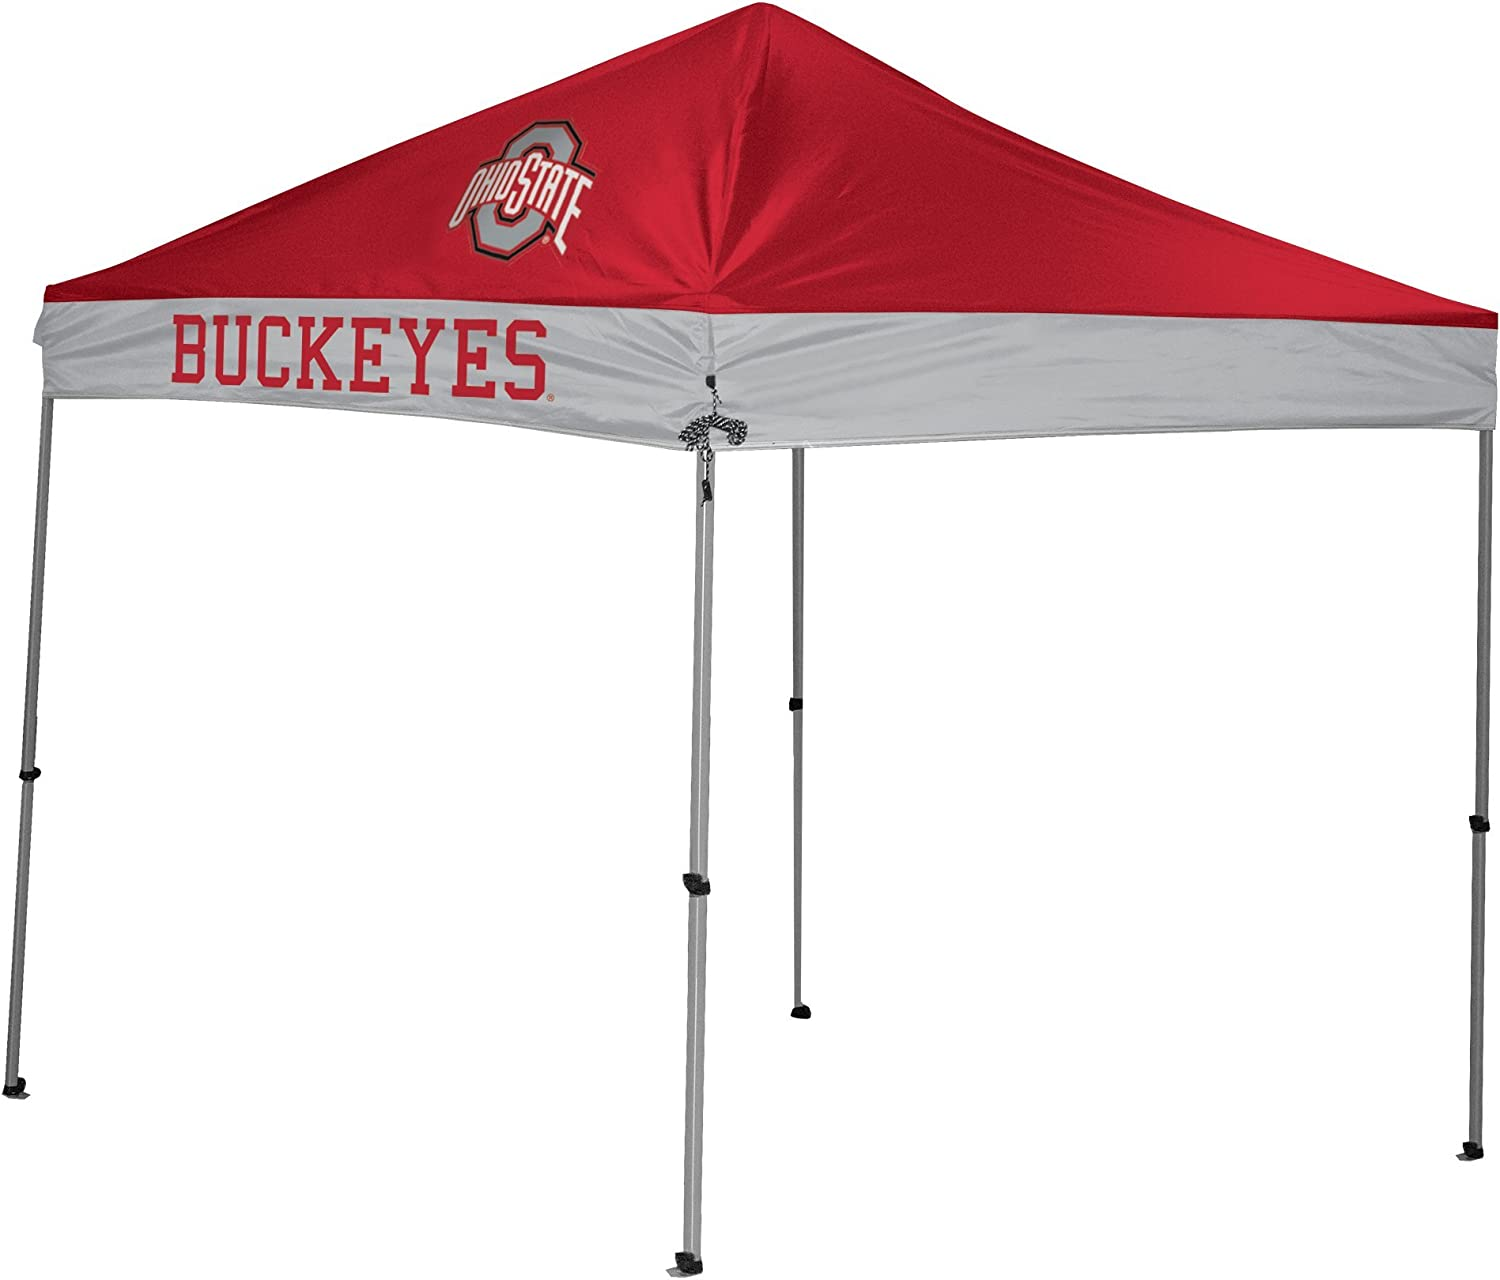 9x9 NCAA Instant Pop-Up Canopy Tent with Carrying Case All Team Options